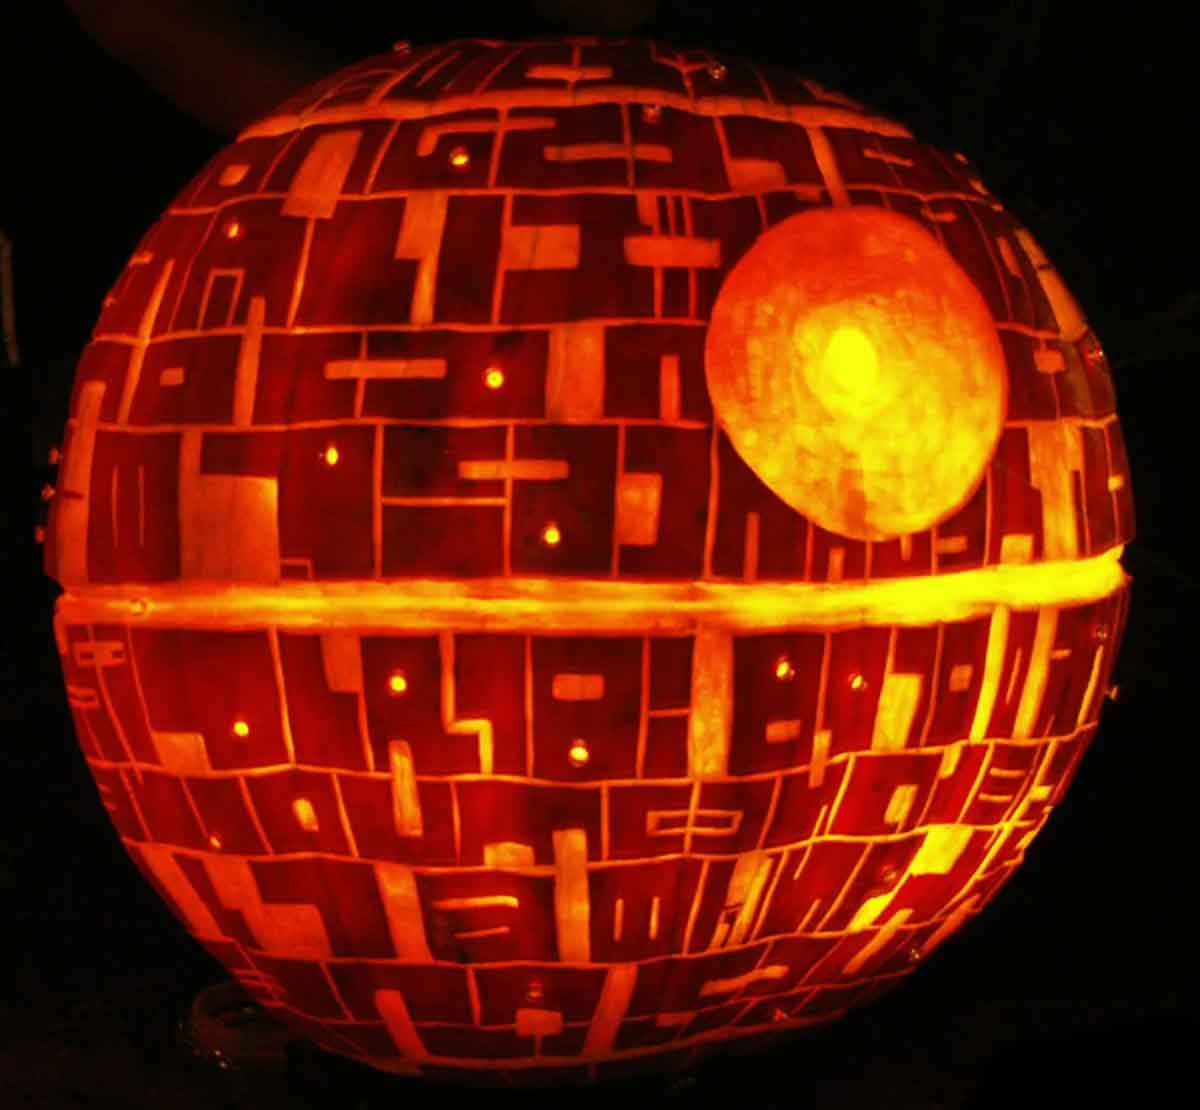 6 Nerdy Pumpkin Carving Ideas For Sci Fi Fans With Carving Templates